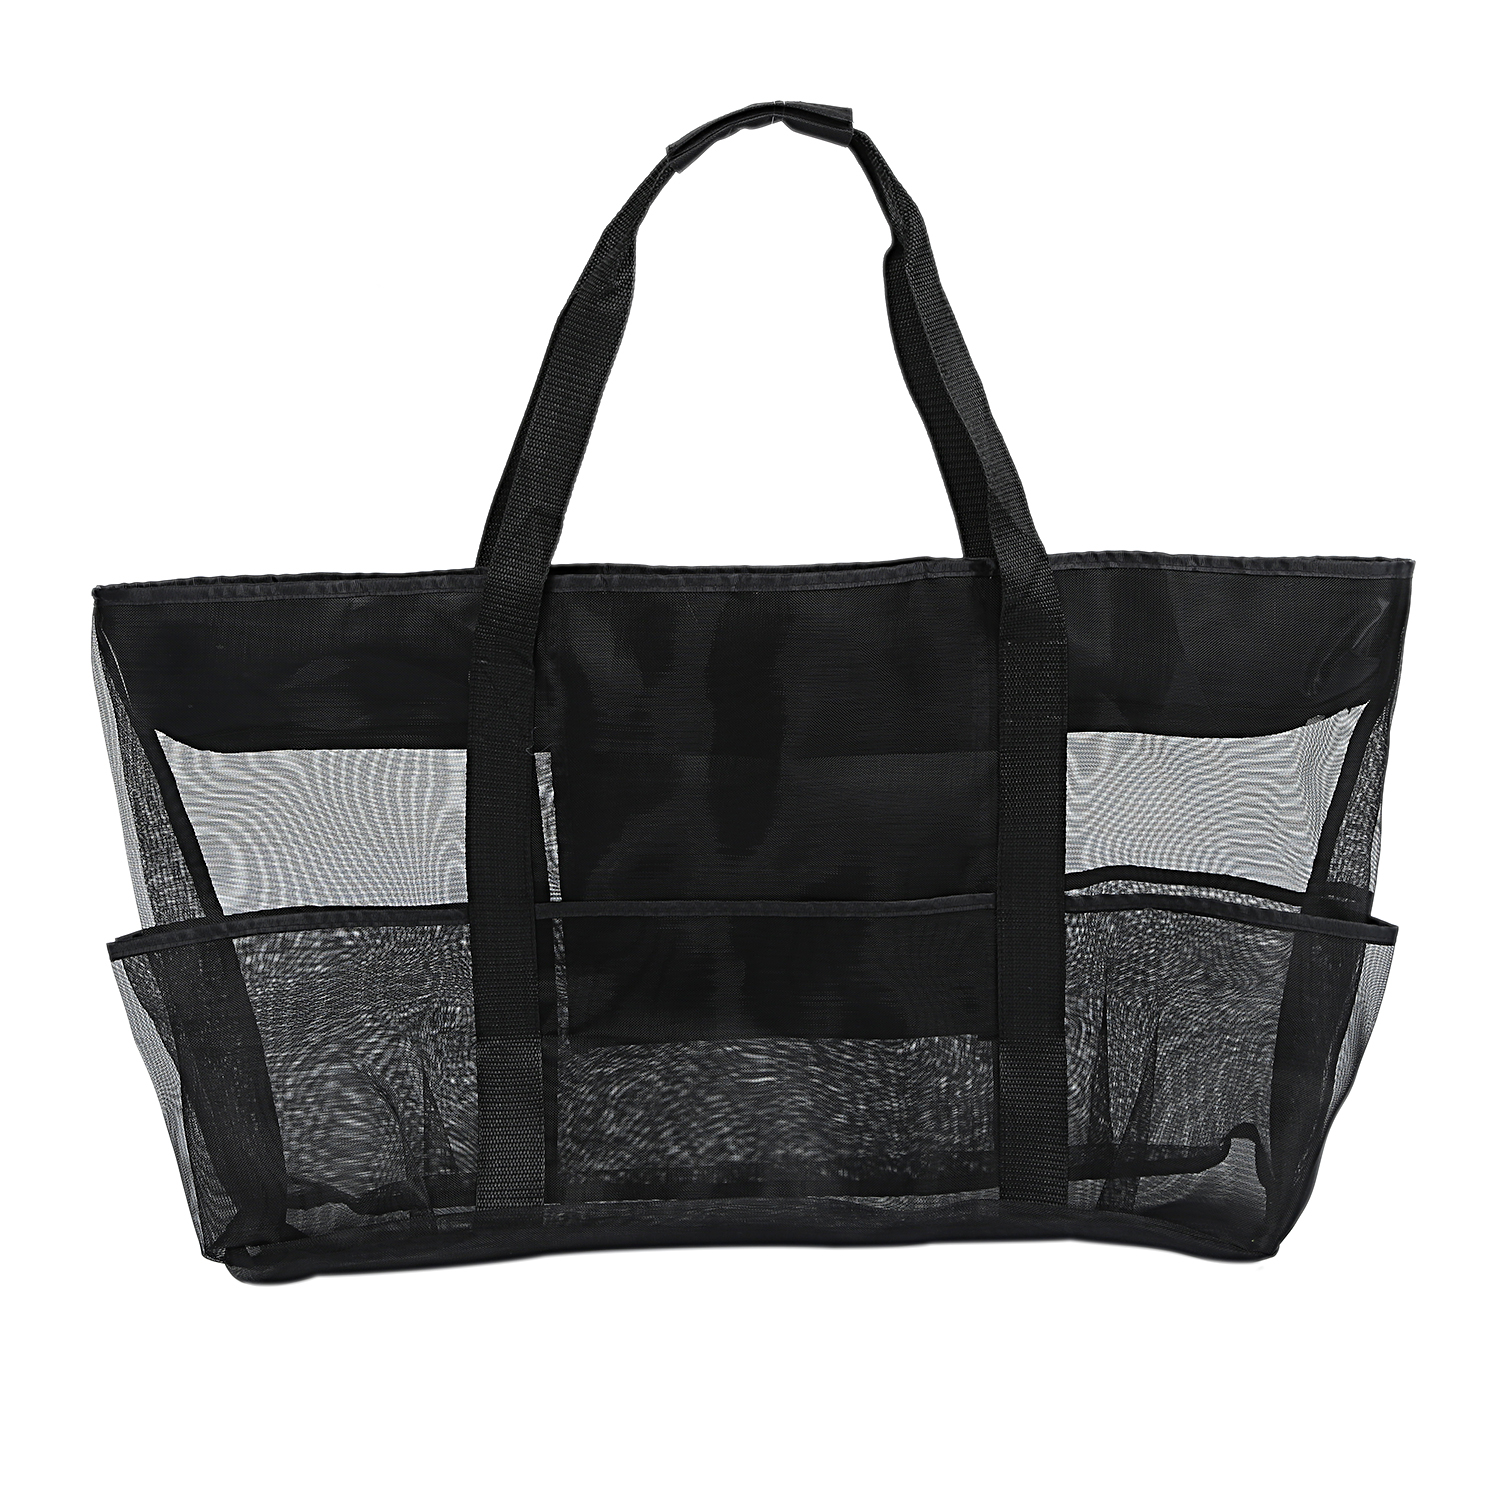 XXL Mesh Beach Bag Family Mesh Beach Bag Mesh Bag For Sand Toys, Extra Large Family Mesh Beach Bag Tote, Black